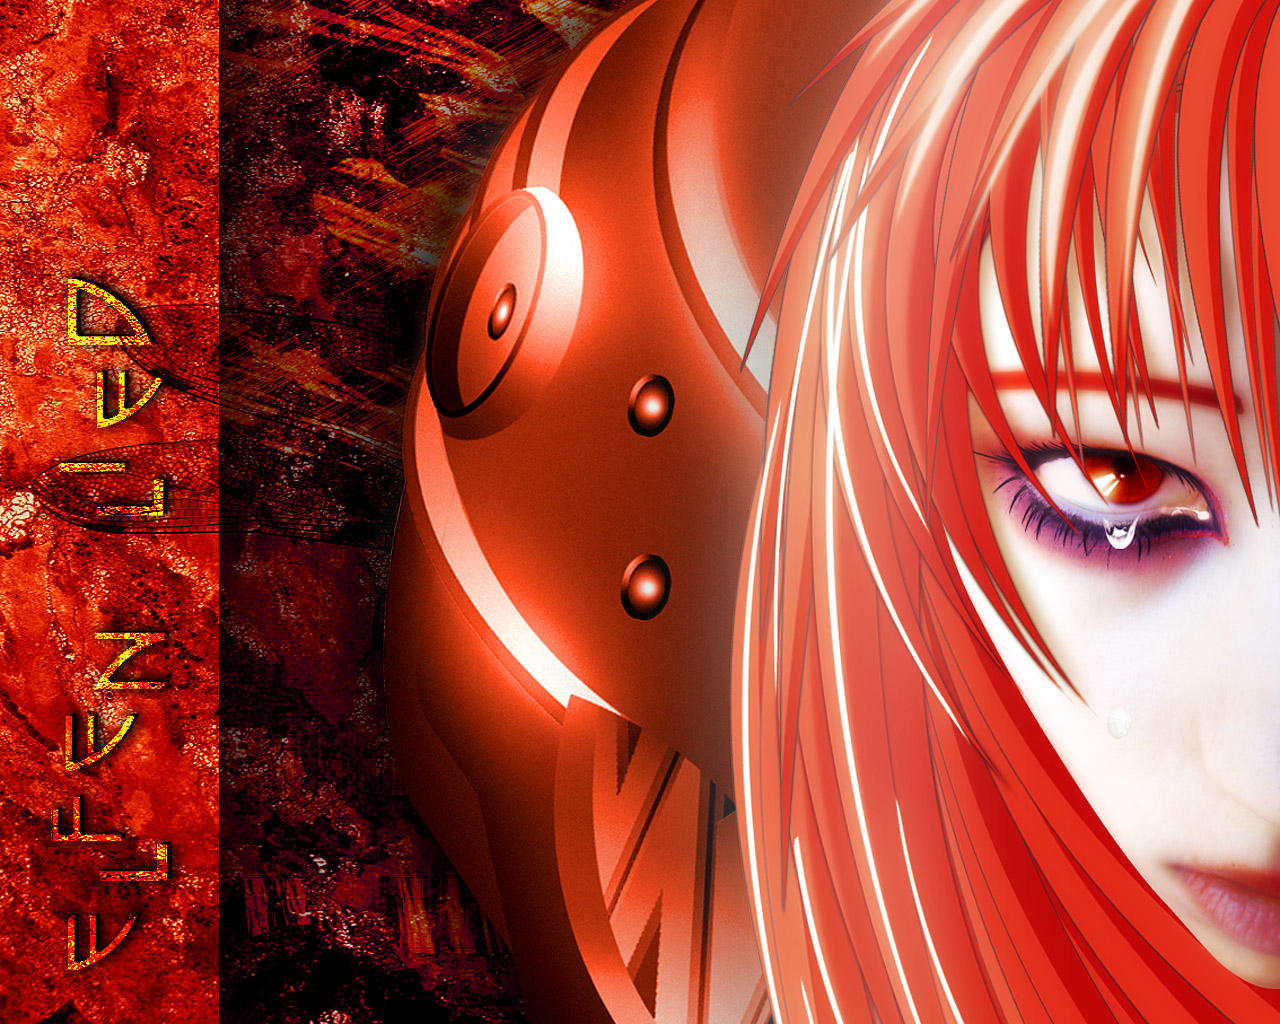 Elfen Lied Wallpaper by ~neodecay on deviantART